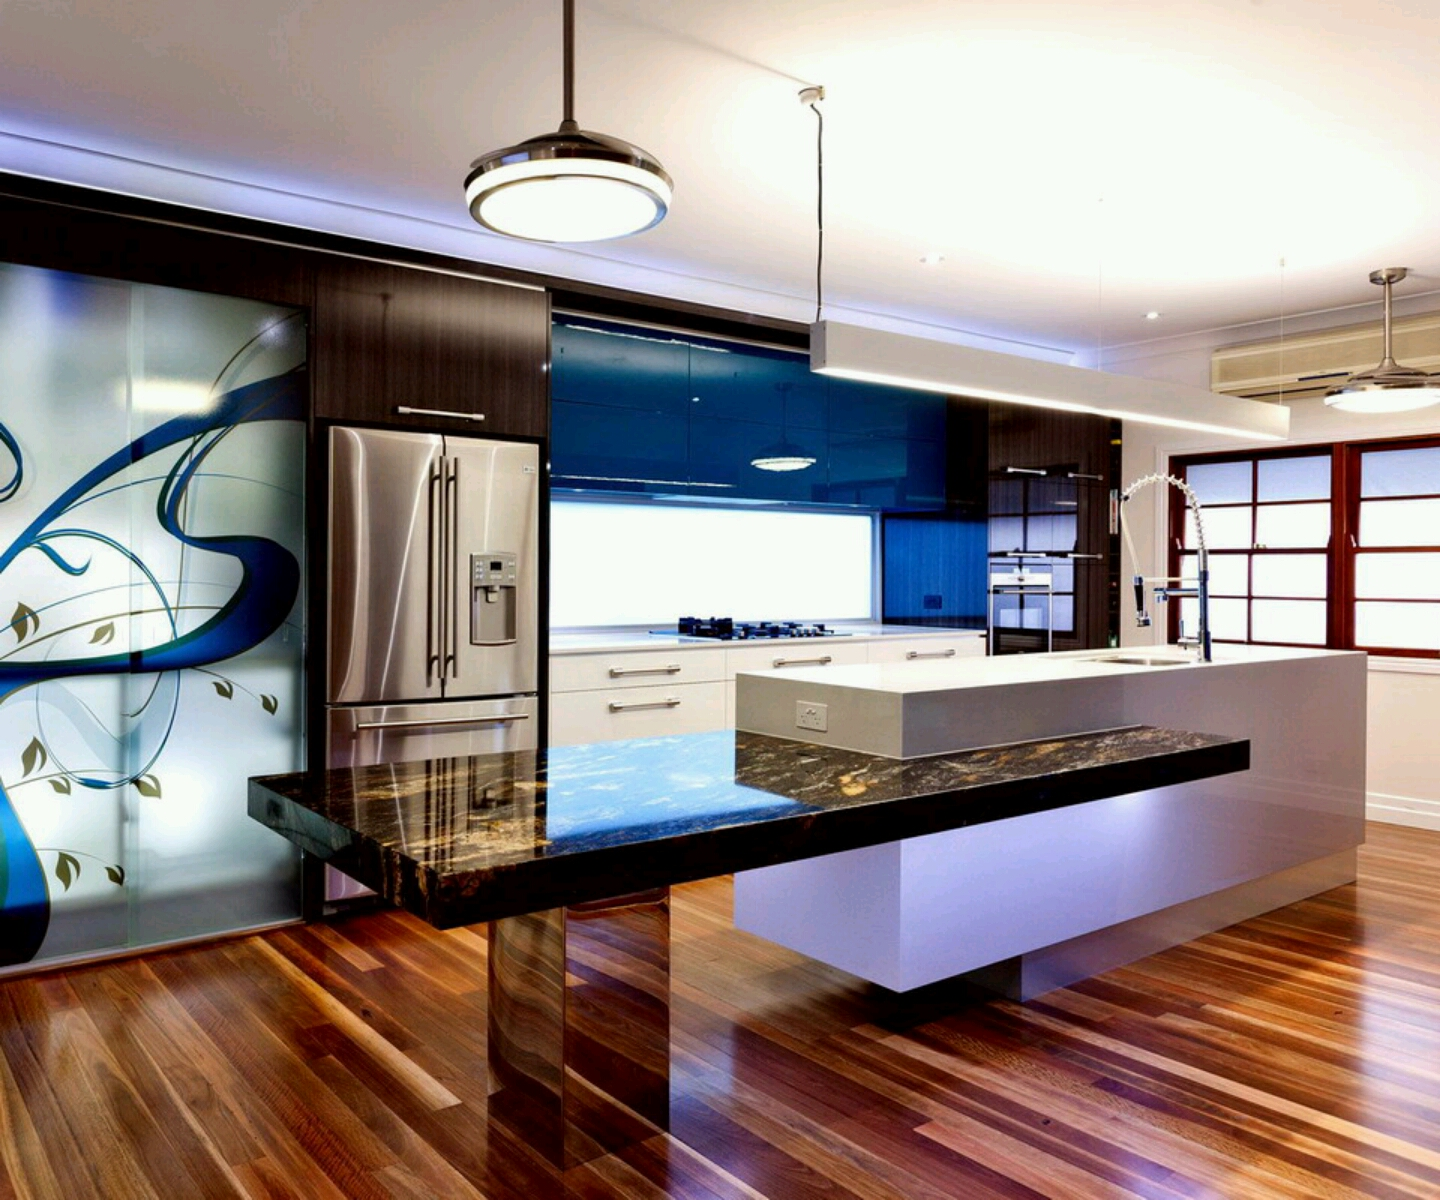 Ultra modern kitchen designs ideas new home designs for Kitchen designs new